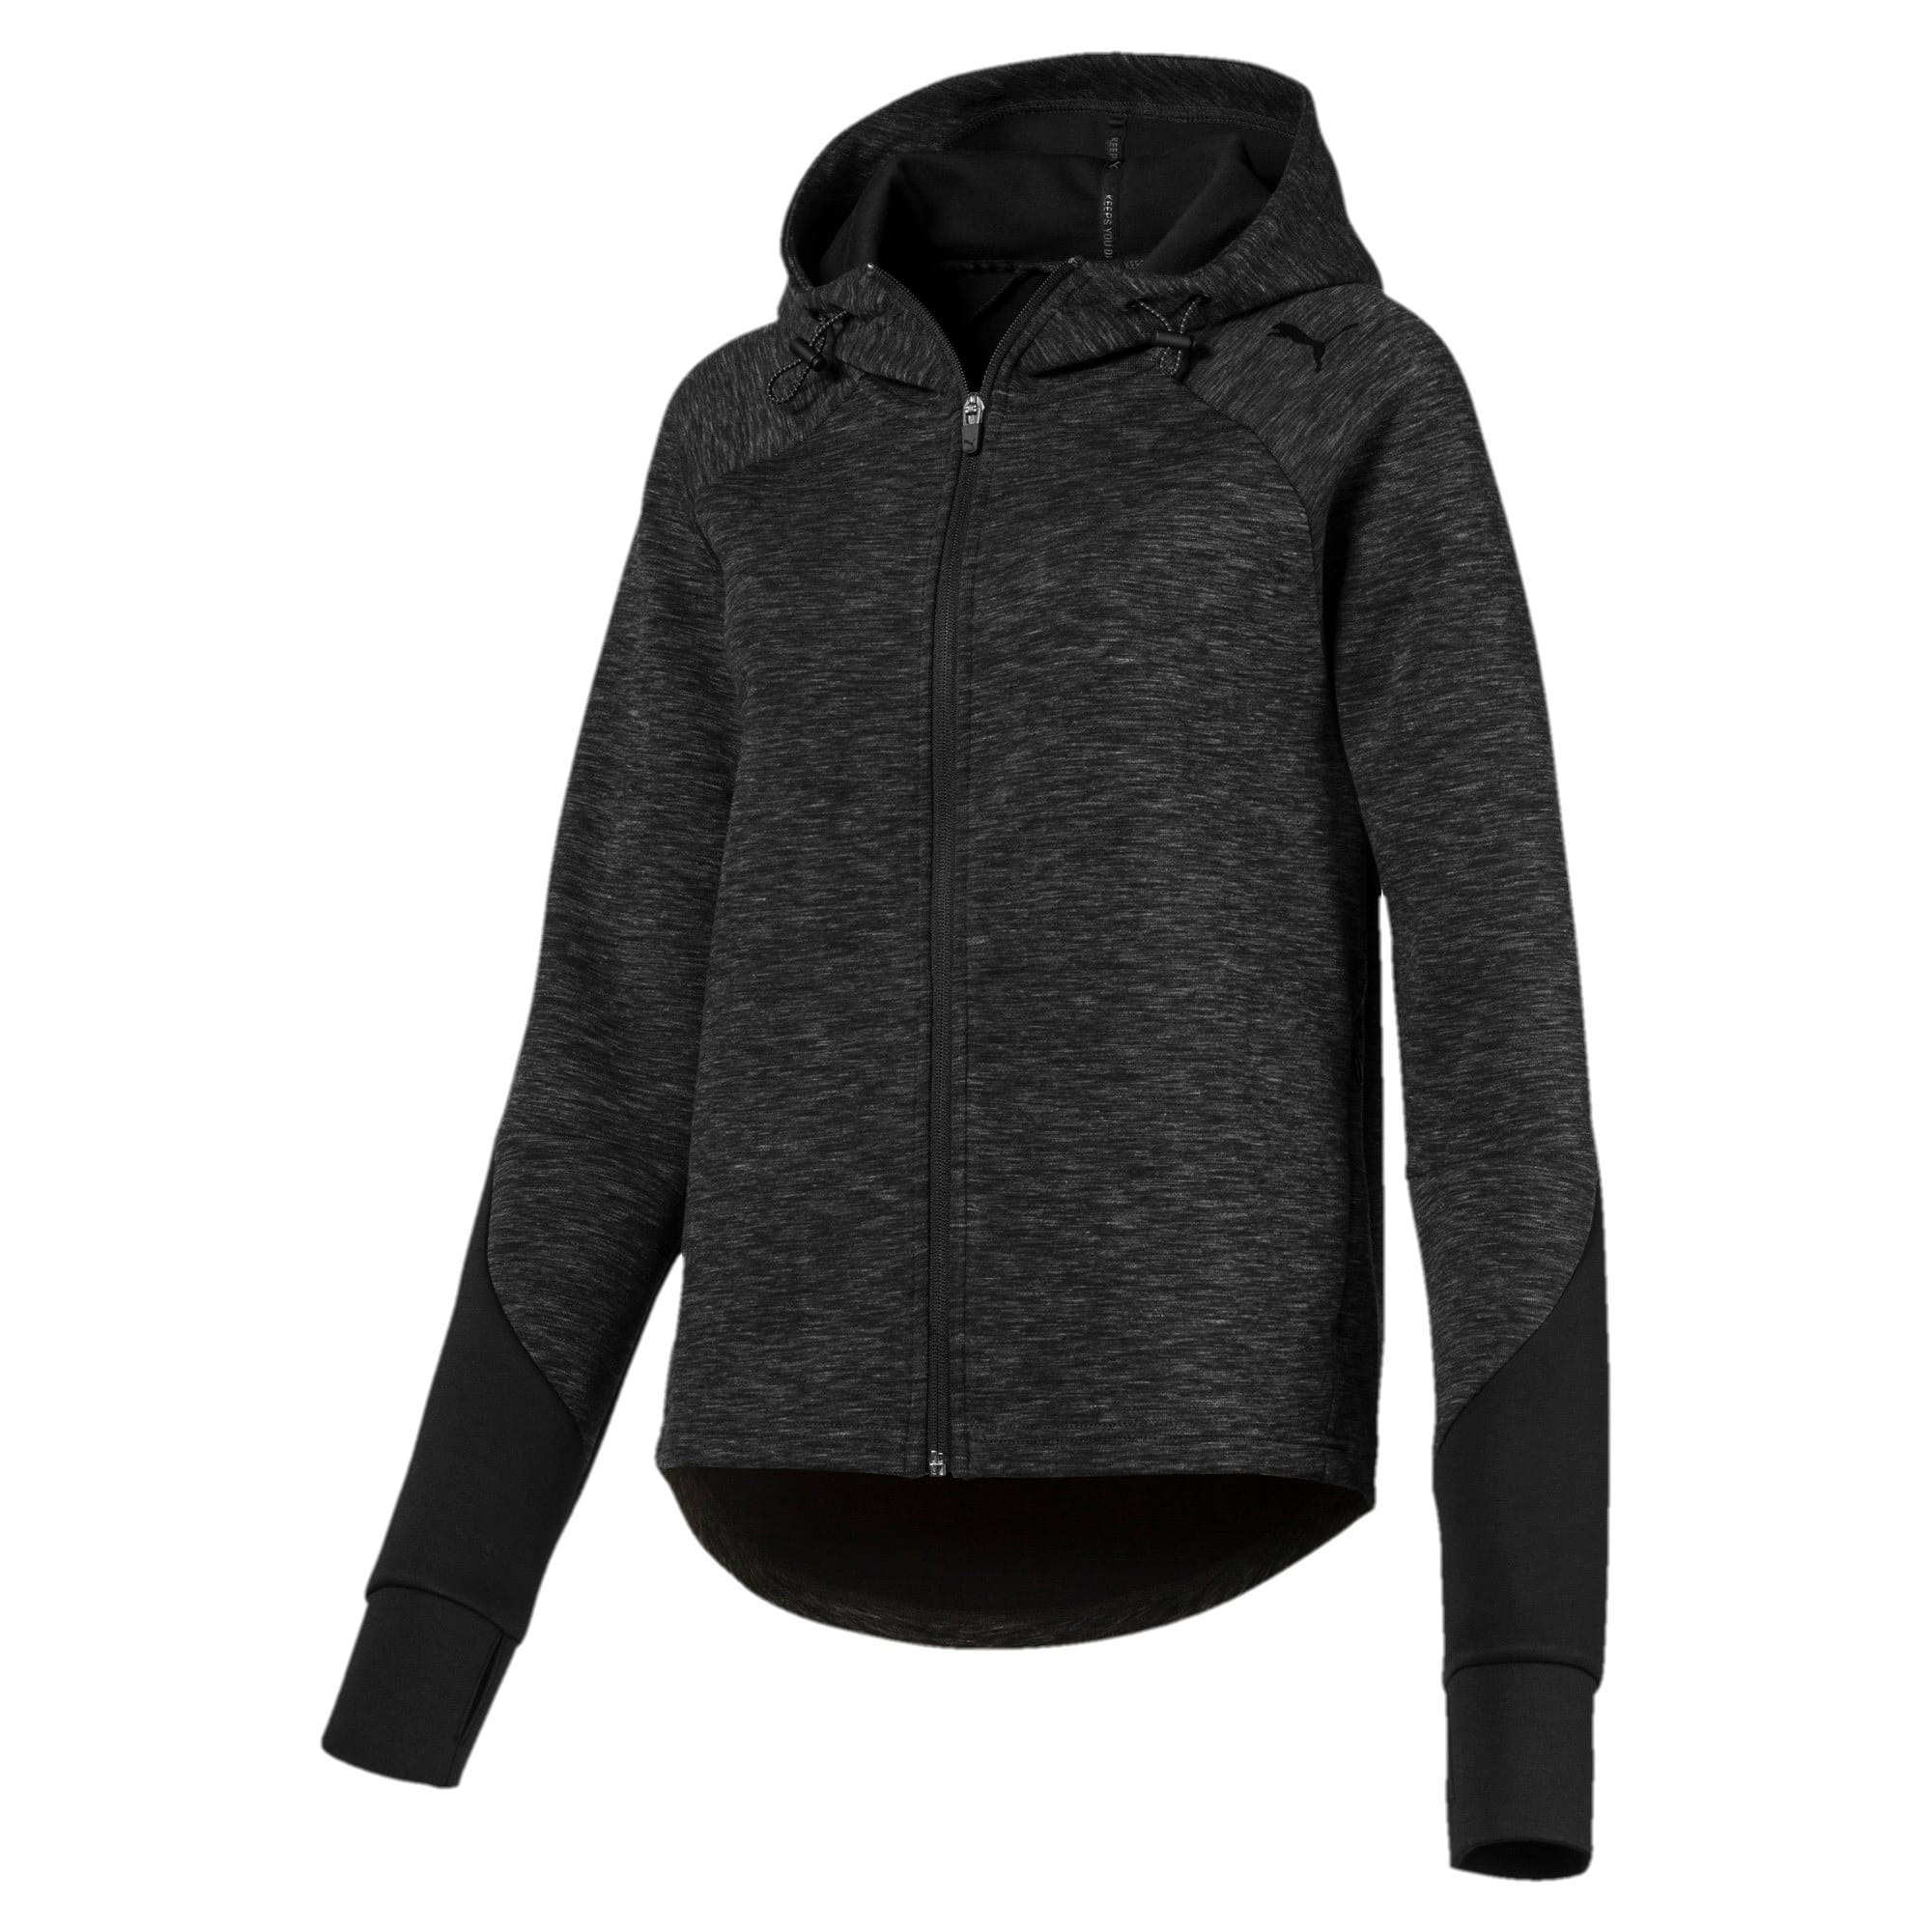 Thumbnail 1 of Evostripe Full Zip Women's Hoodie, Cotton Black-heather, medium